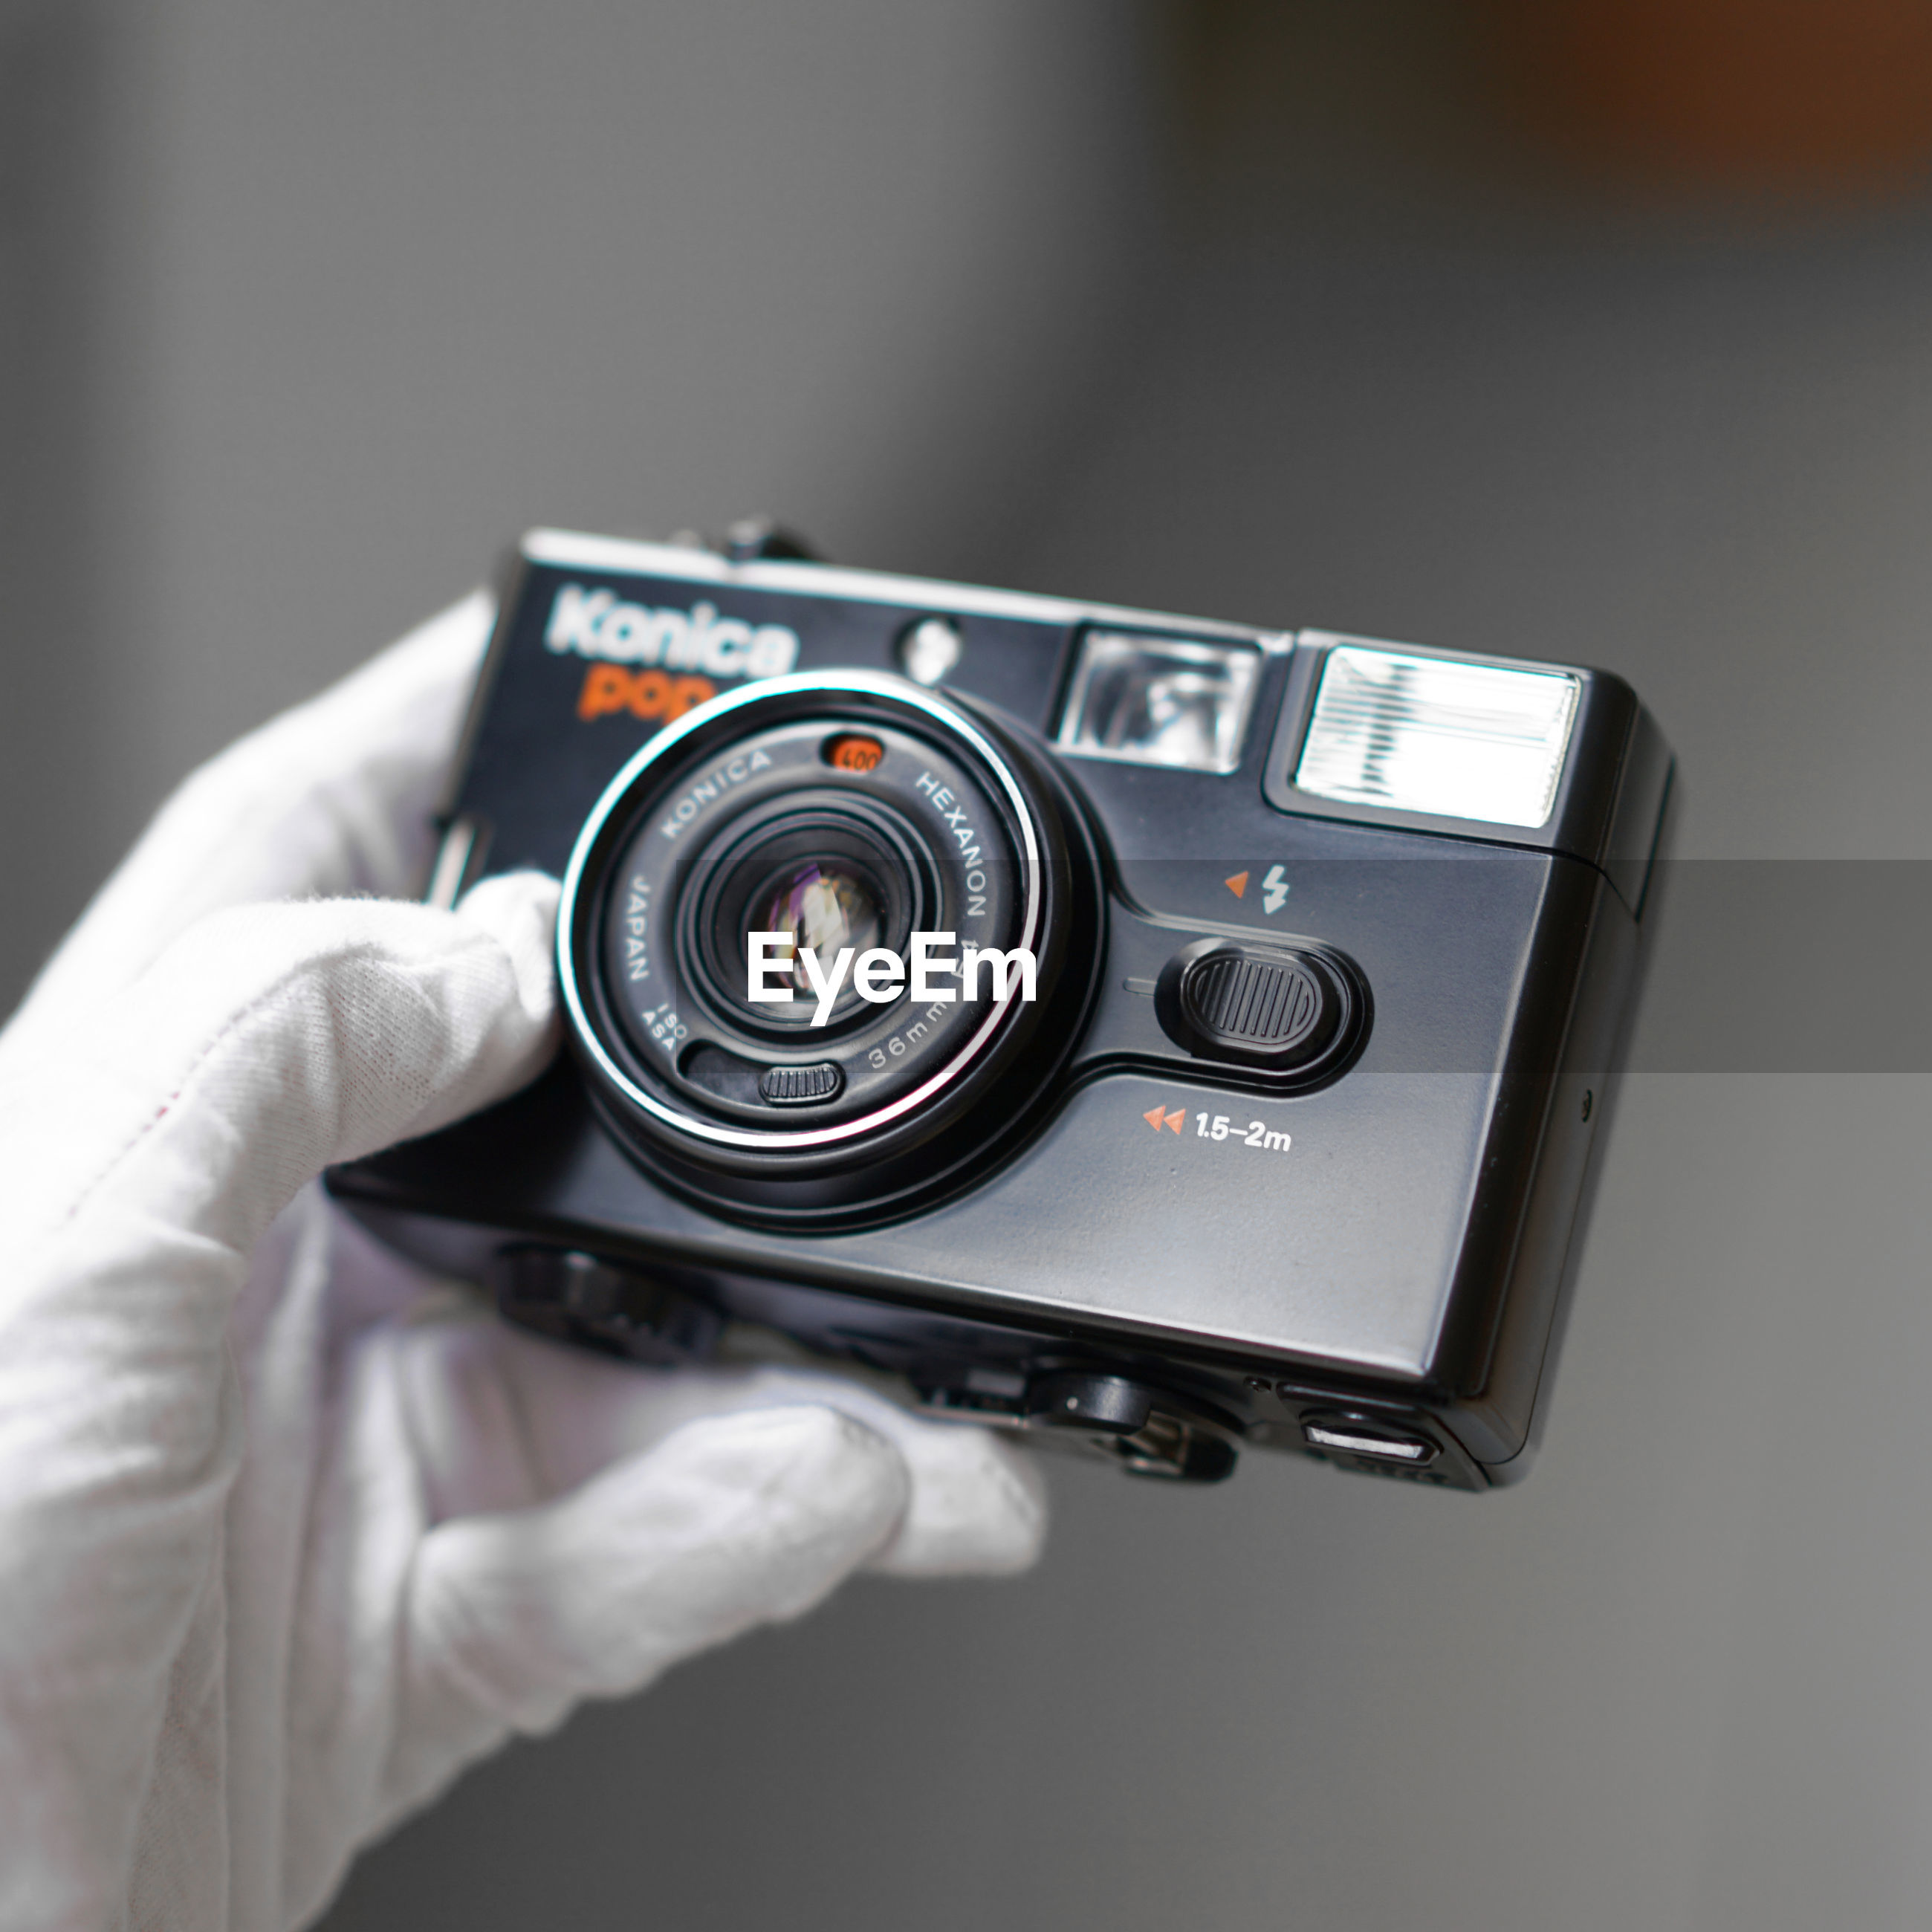 CLOSE-UP OF HAND HOLDING CAMERA WITH MOBILE PHONE